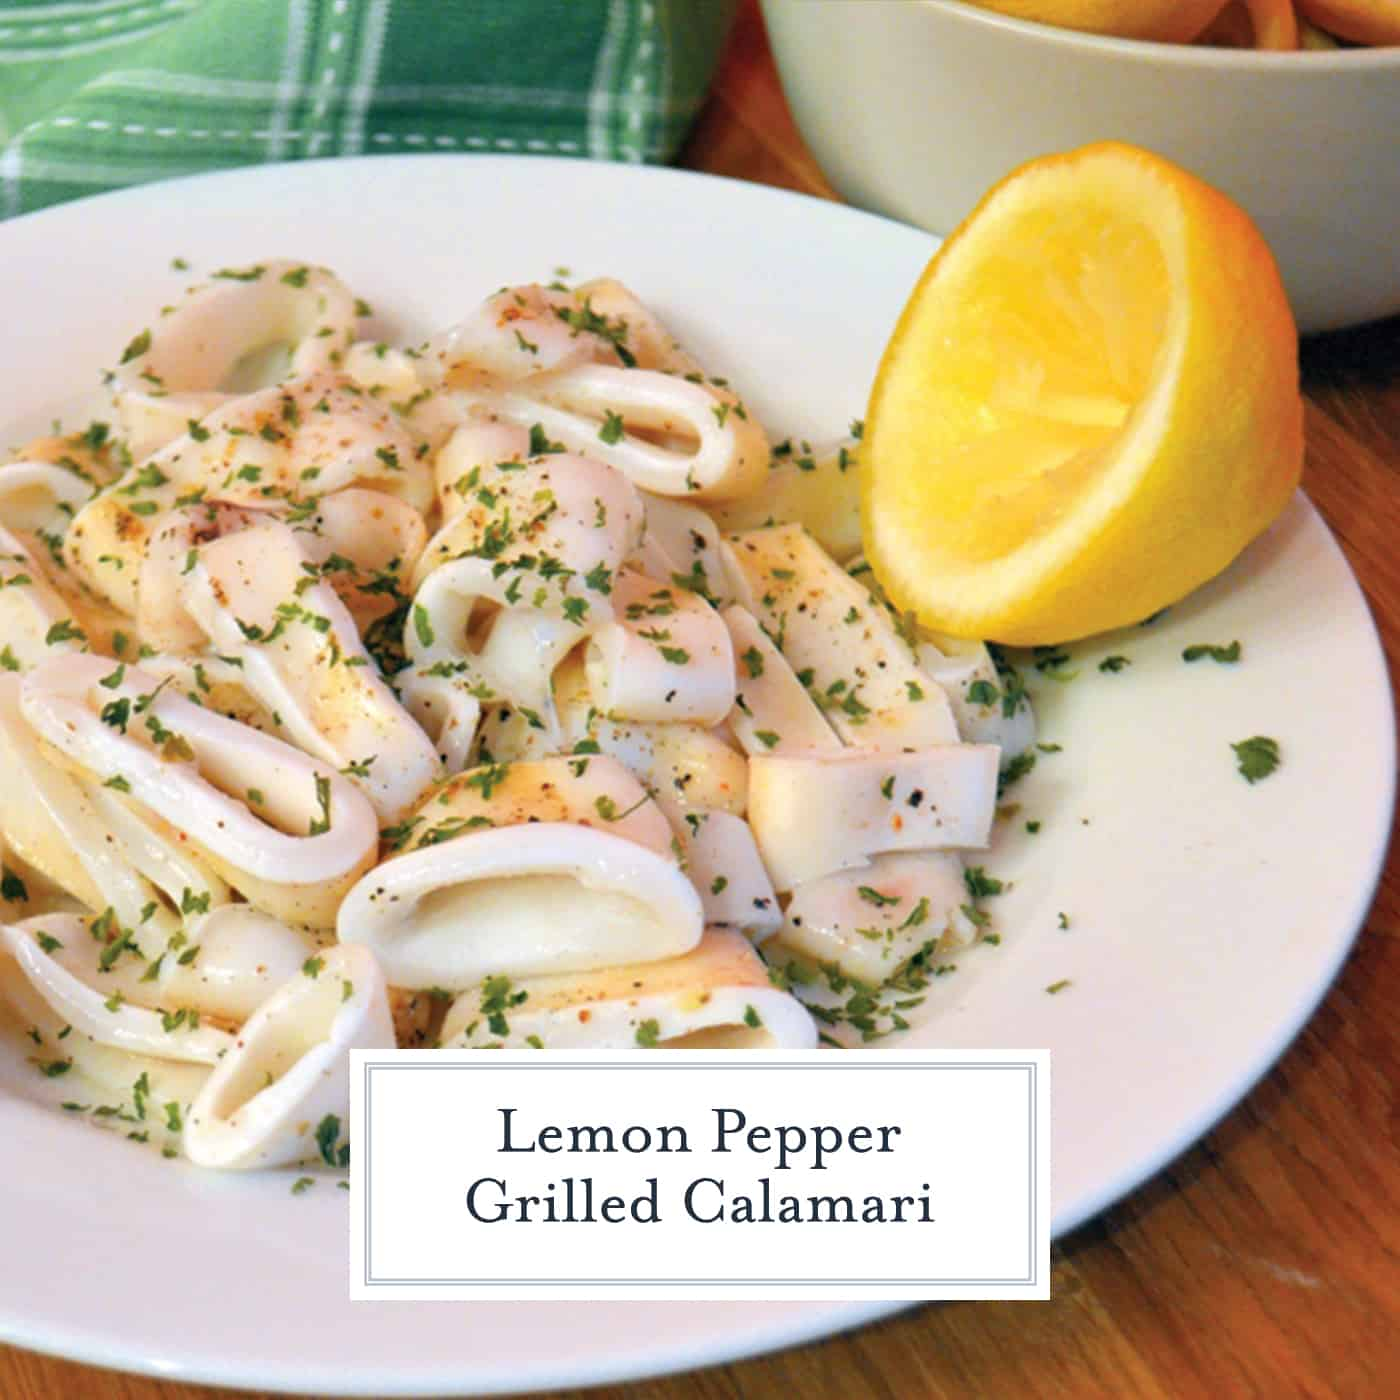 Lemon Pepper Grilled Calamari brings the flavors of the sea right to your dinner table. You won't be disappointed by this mouth-watering recipe.